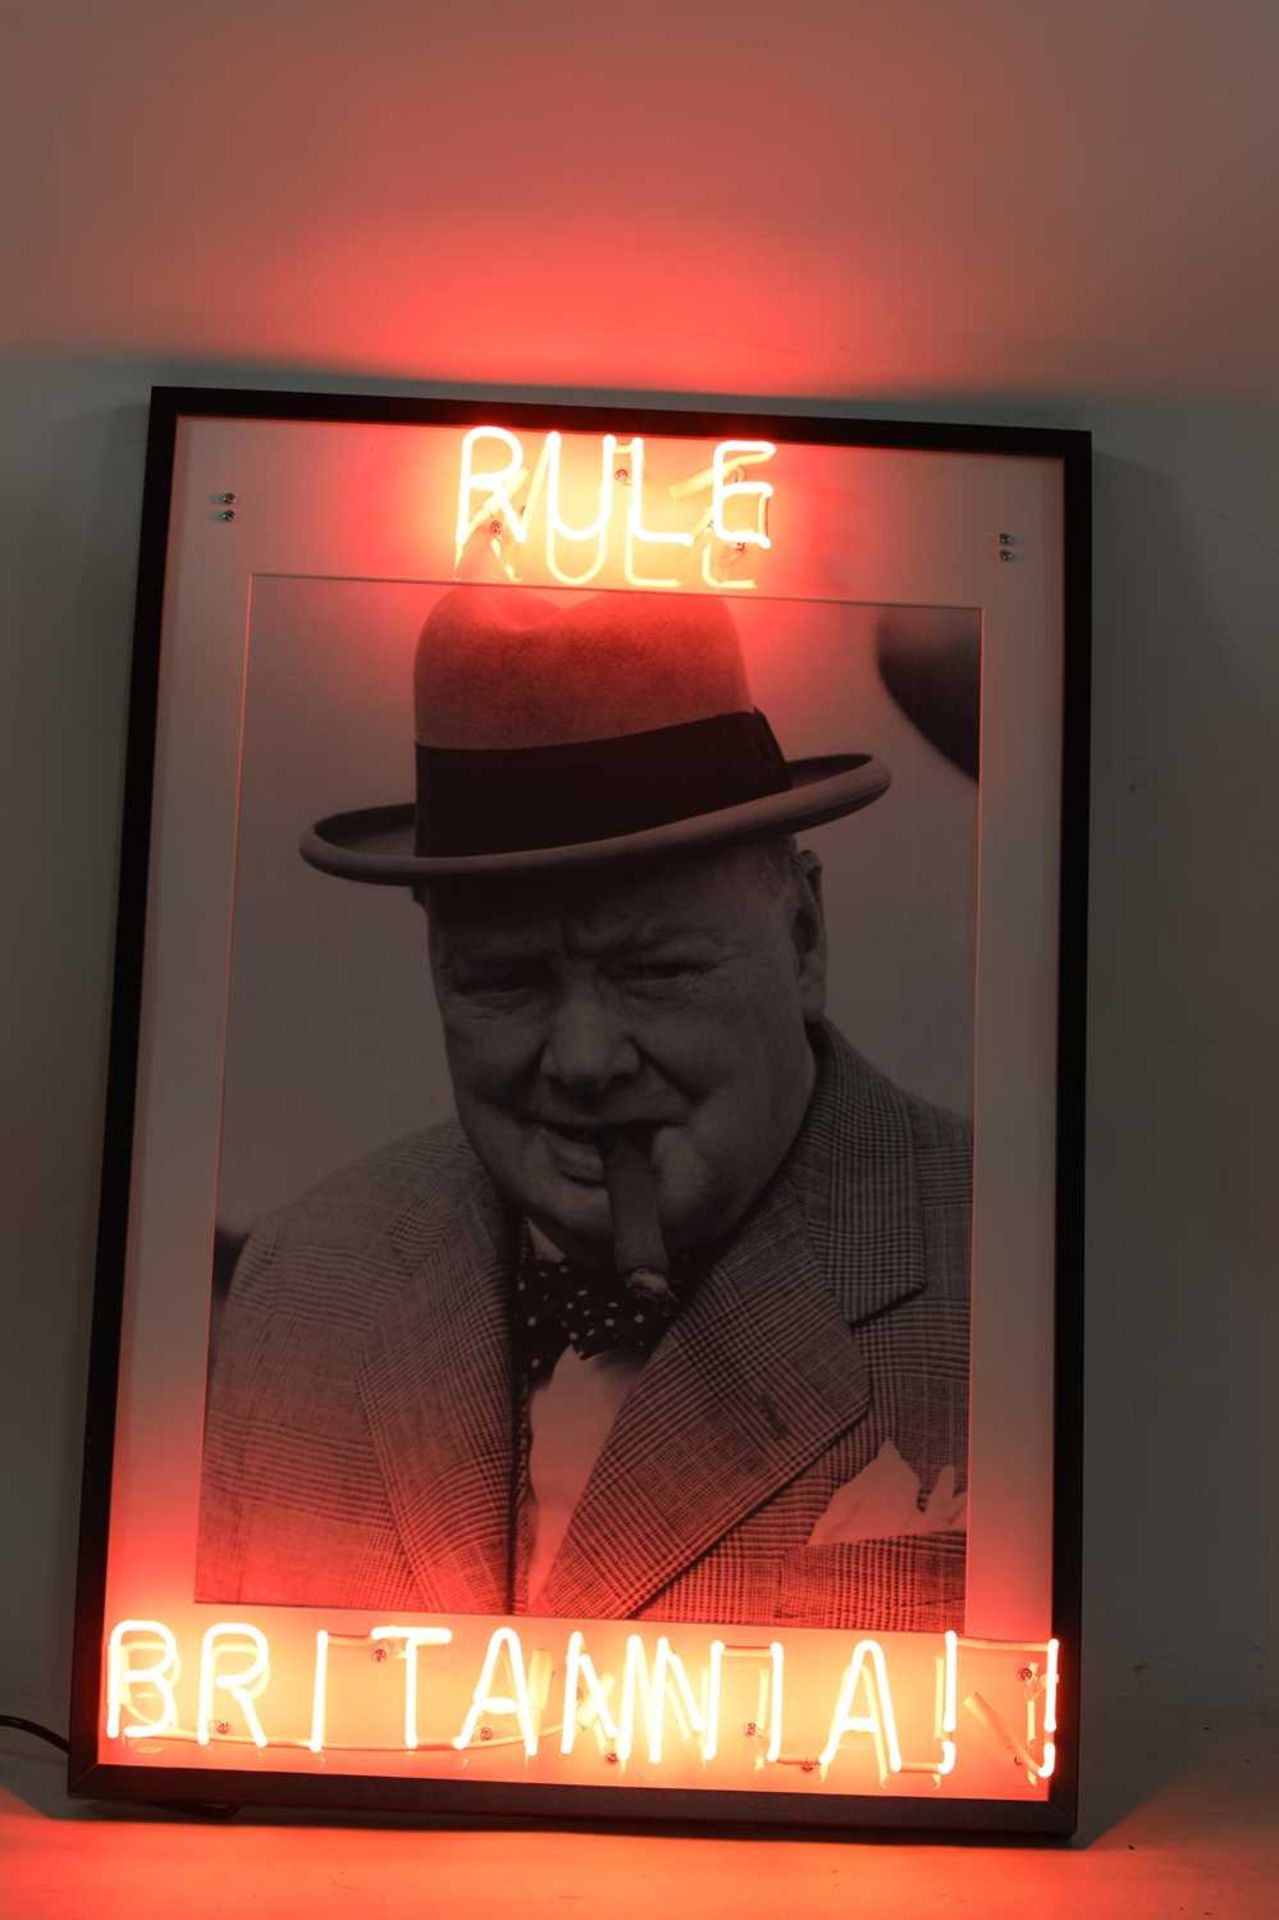 WINSTON CHURCHILL, - Image 3 of 3